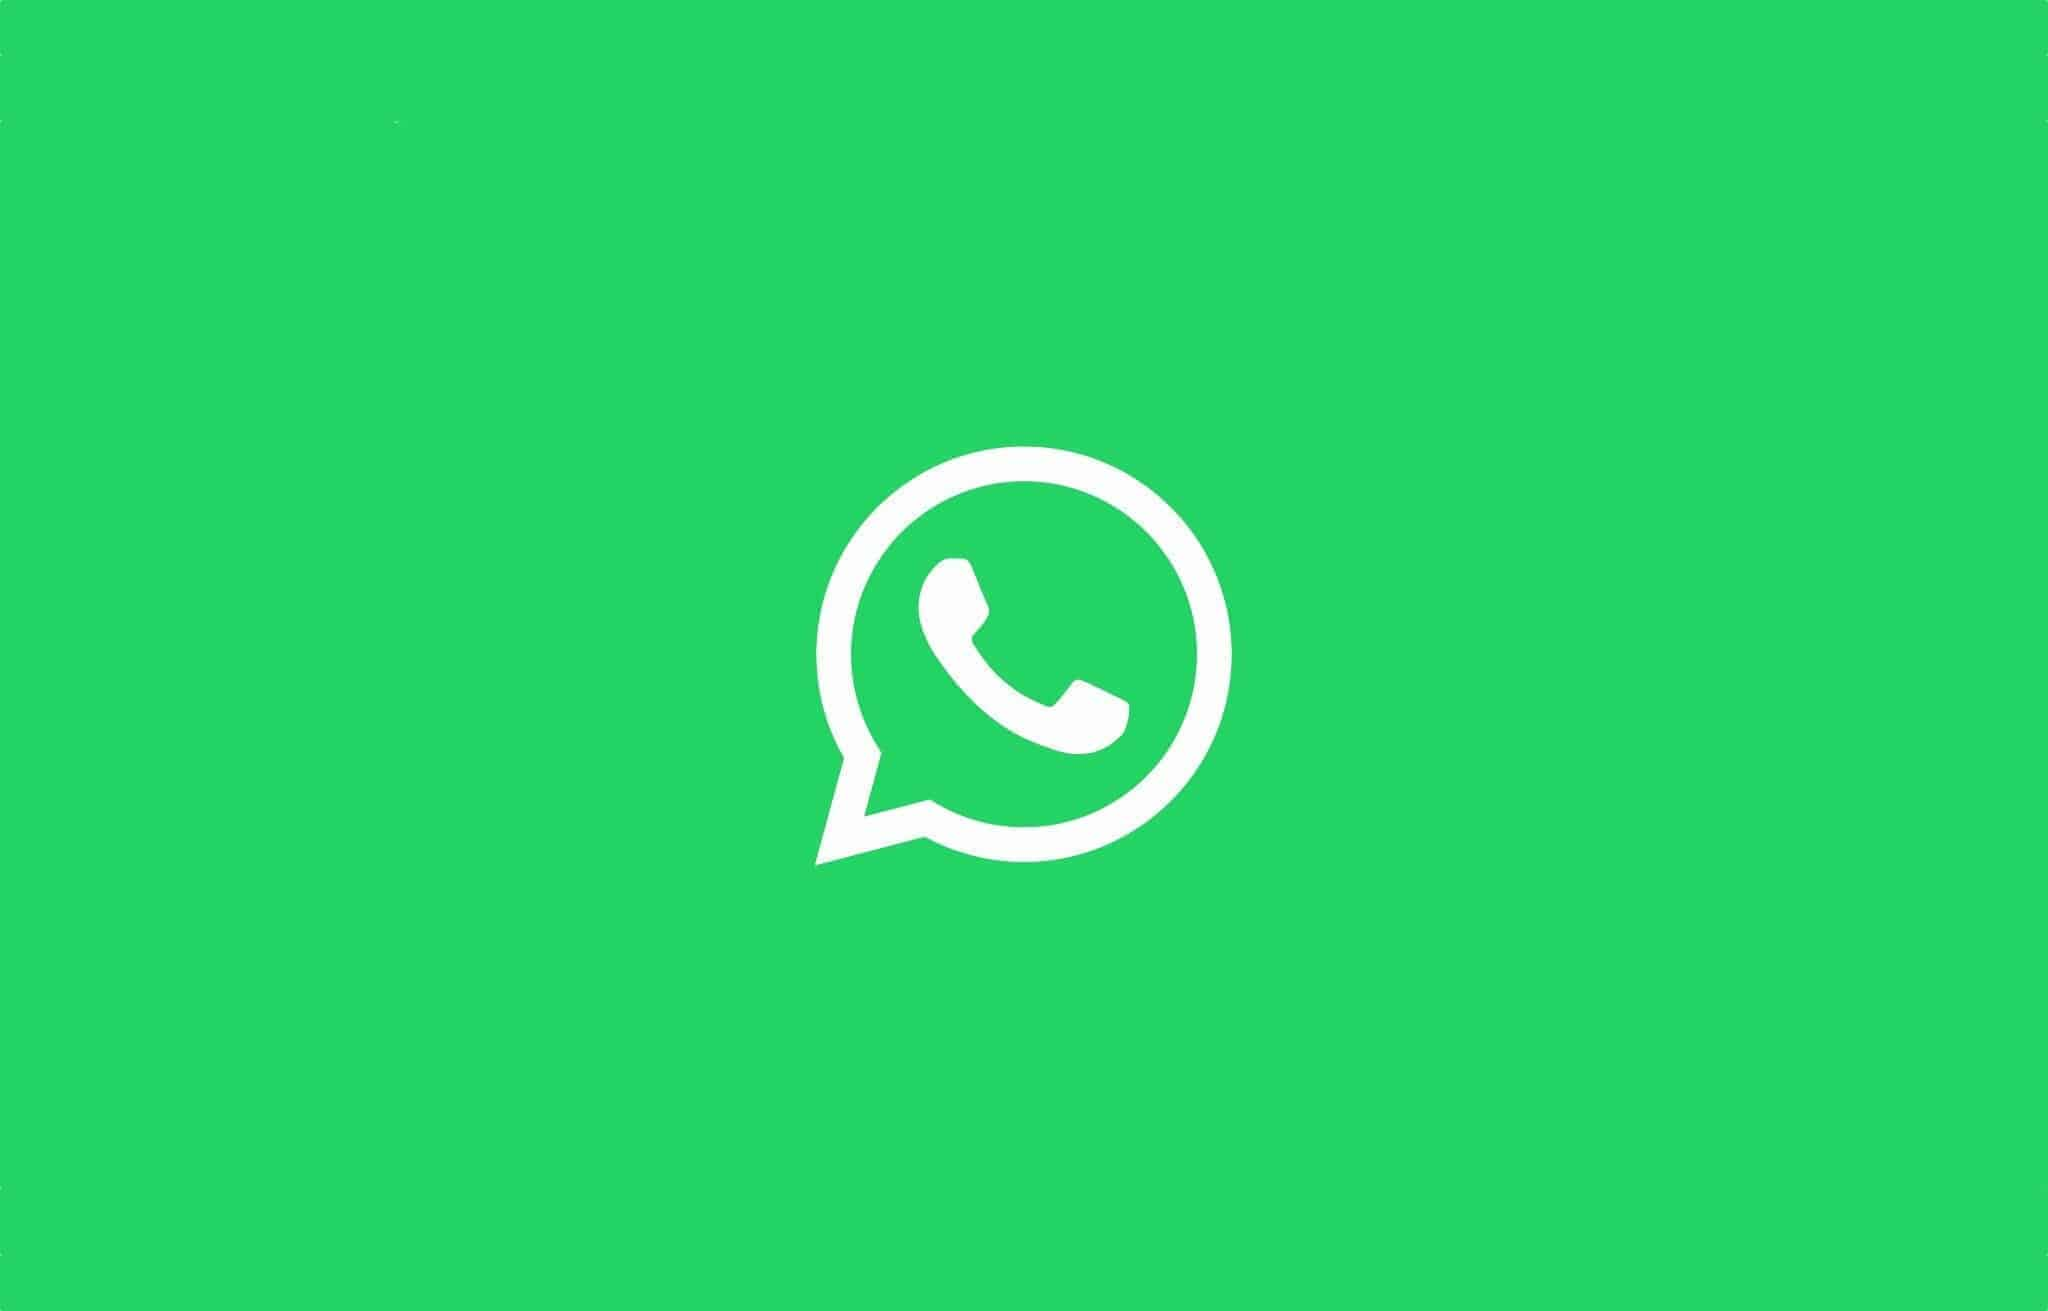 WhatsApp-white-logo-on-green-background